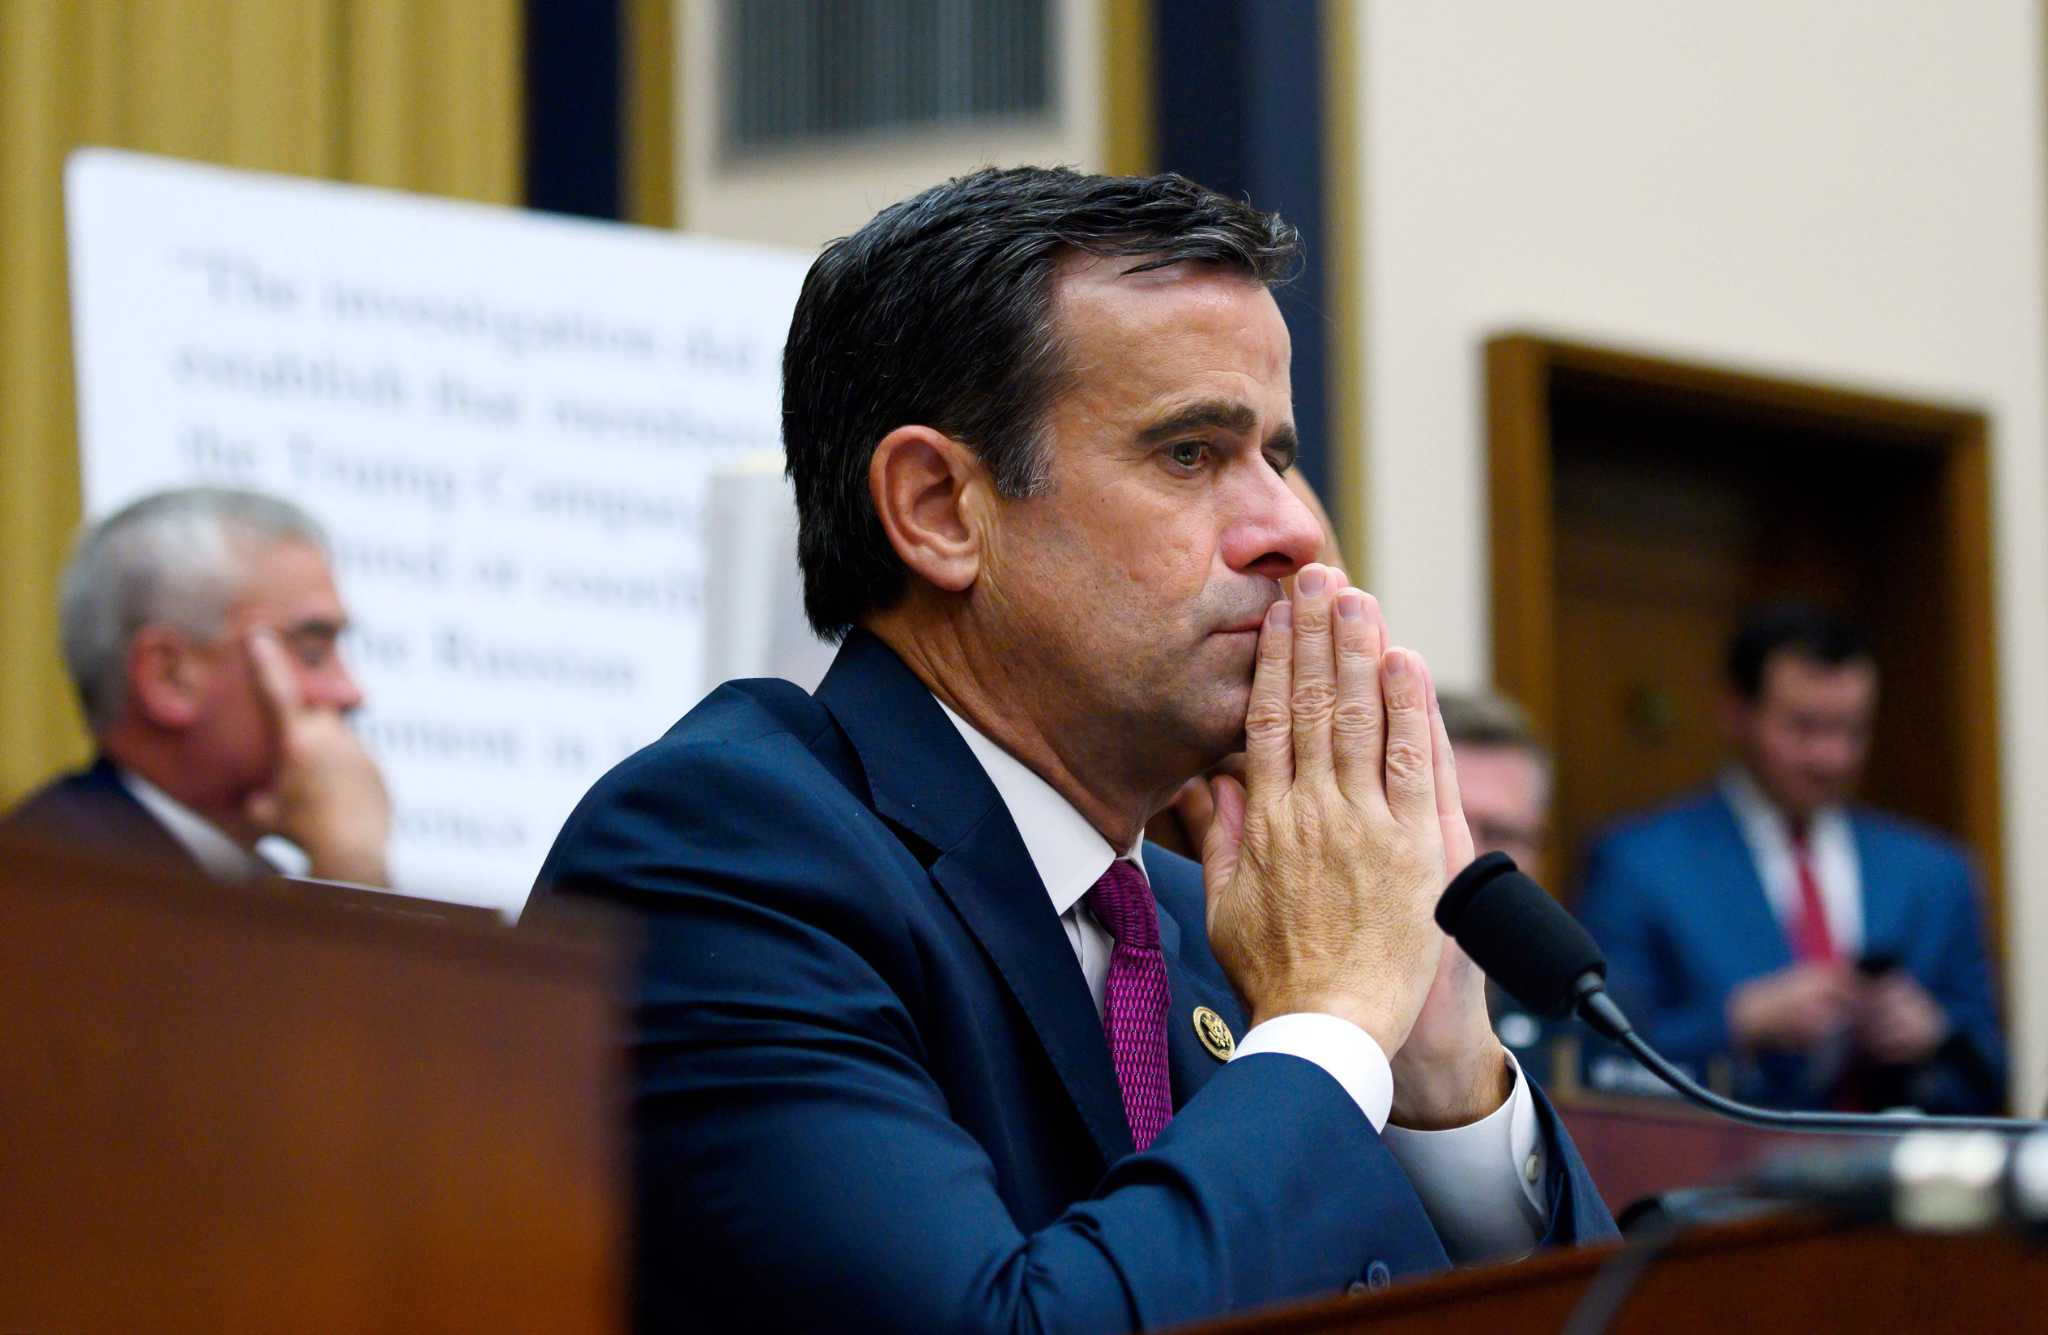 Did Special Counsel Robert Mueller break rules, as Texas Rep. Ratcliffe said?